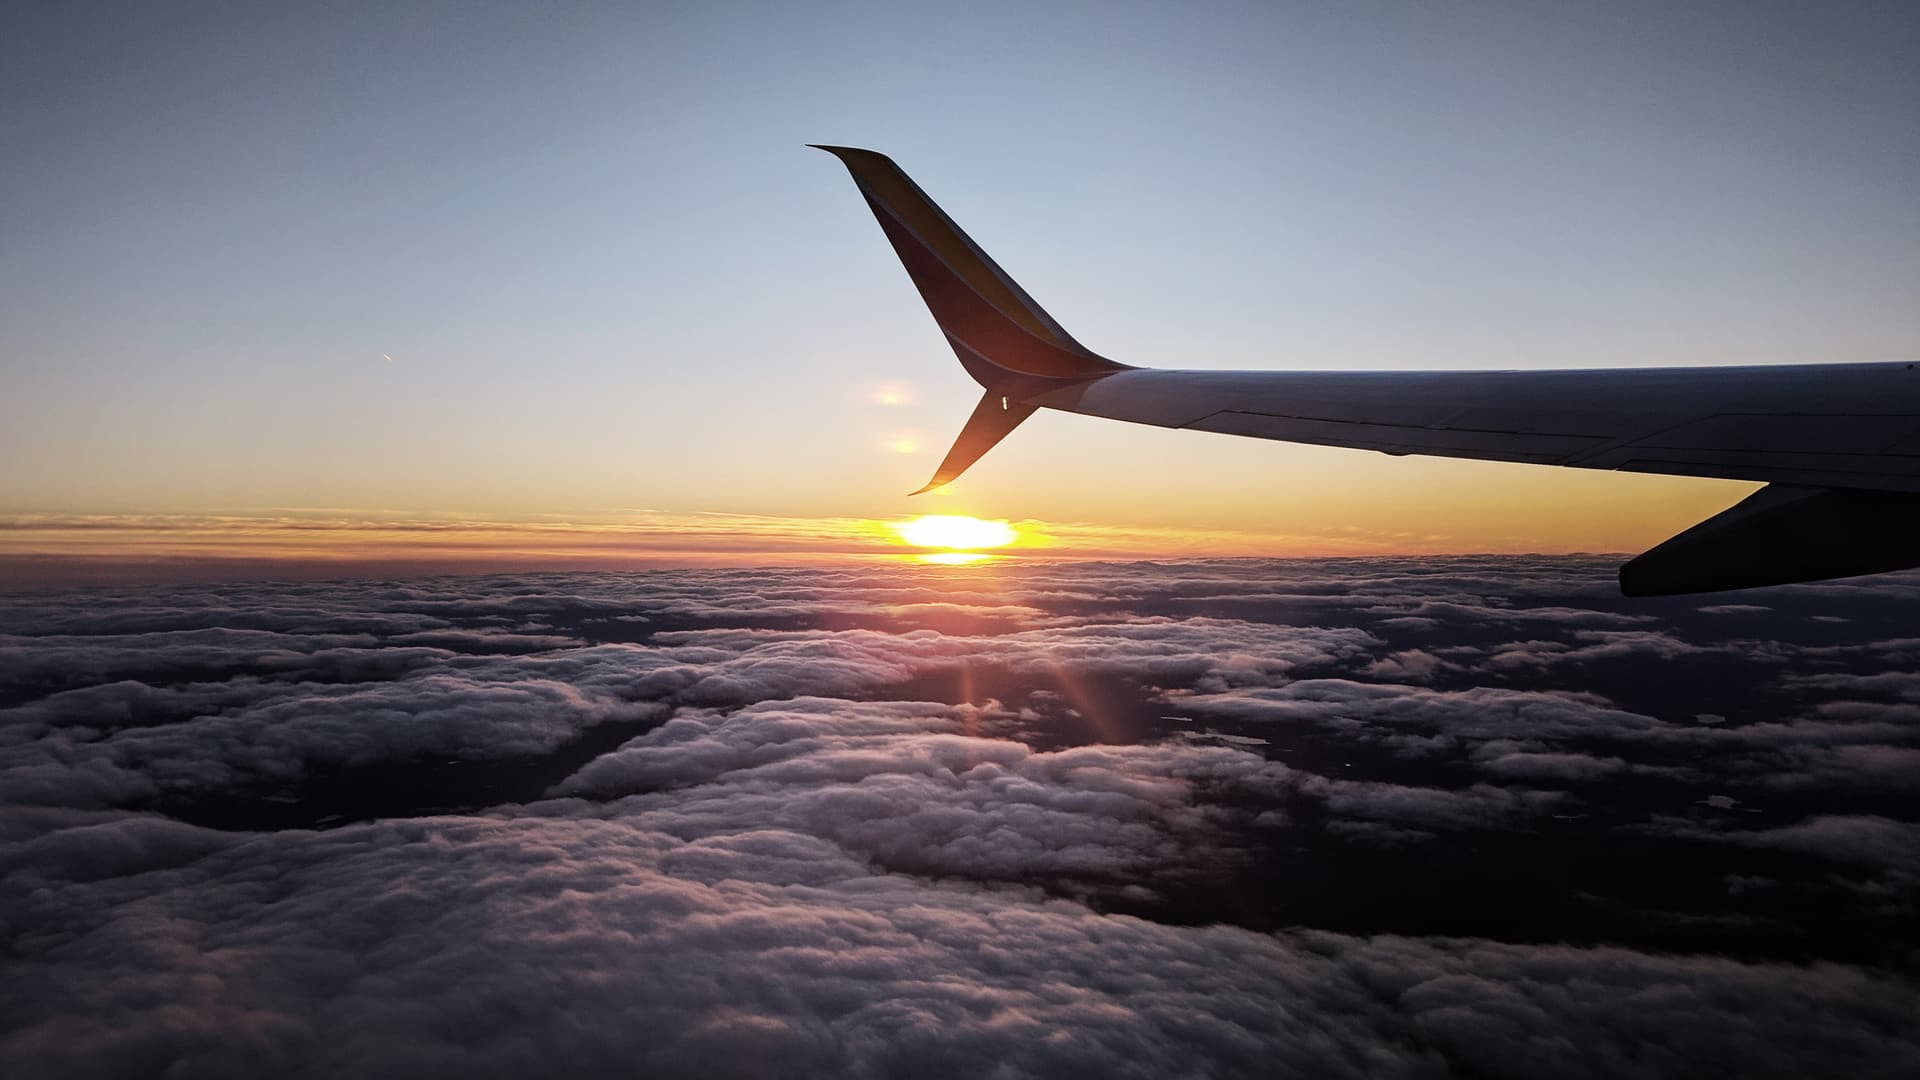 The sunset as seen from above the clouds.